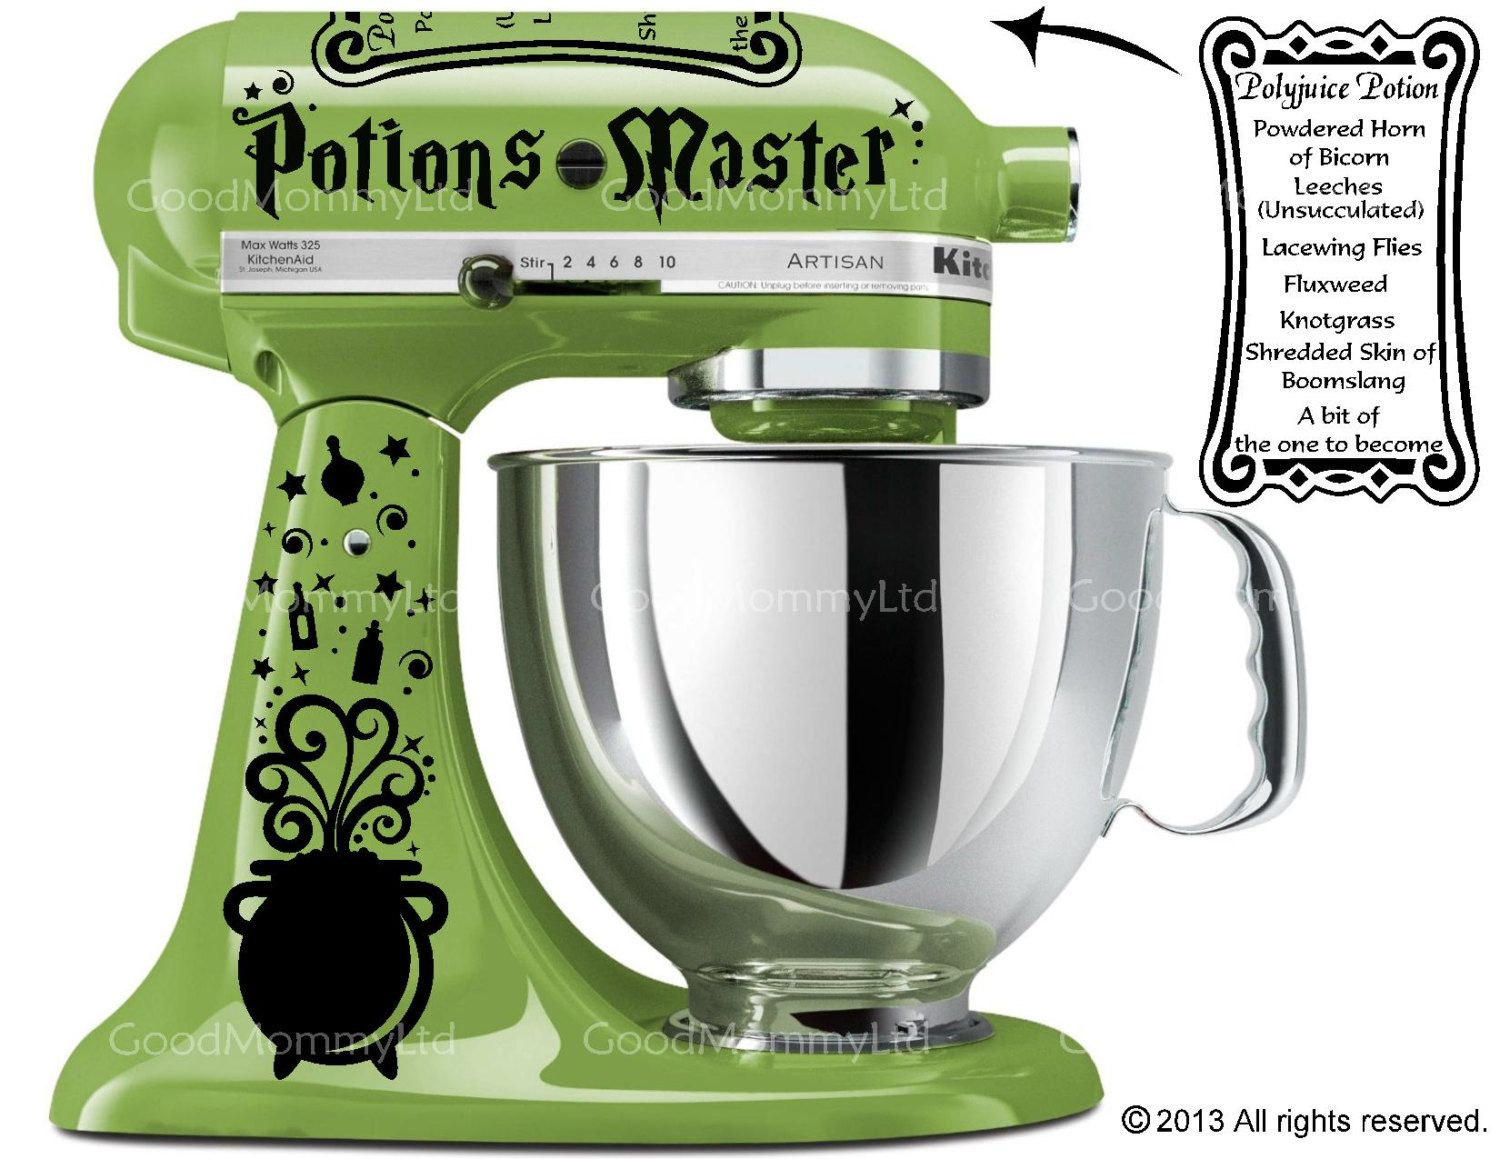 Potions Master Decal Kit For Your Kitchenaid Stand Mixer   Harry Potter  Inspired With Polyjuice Potion